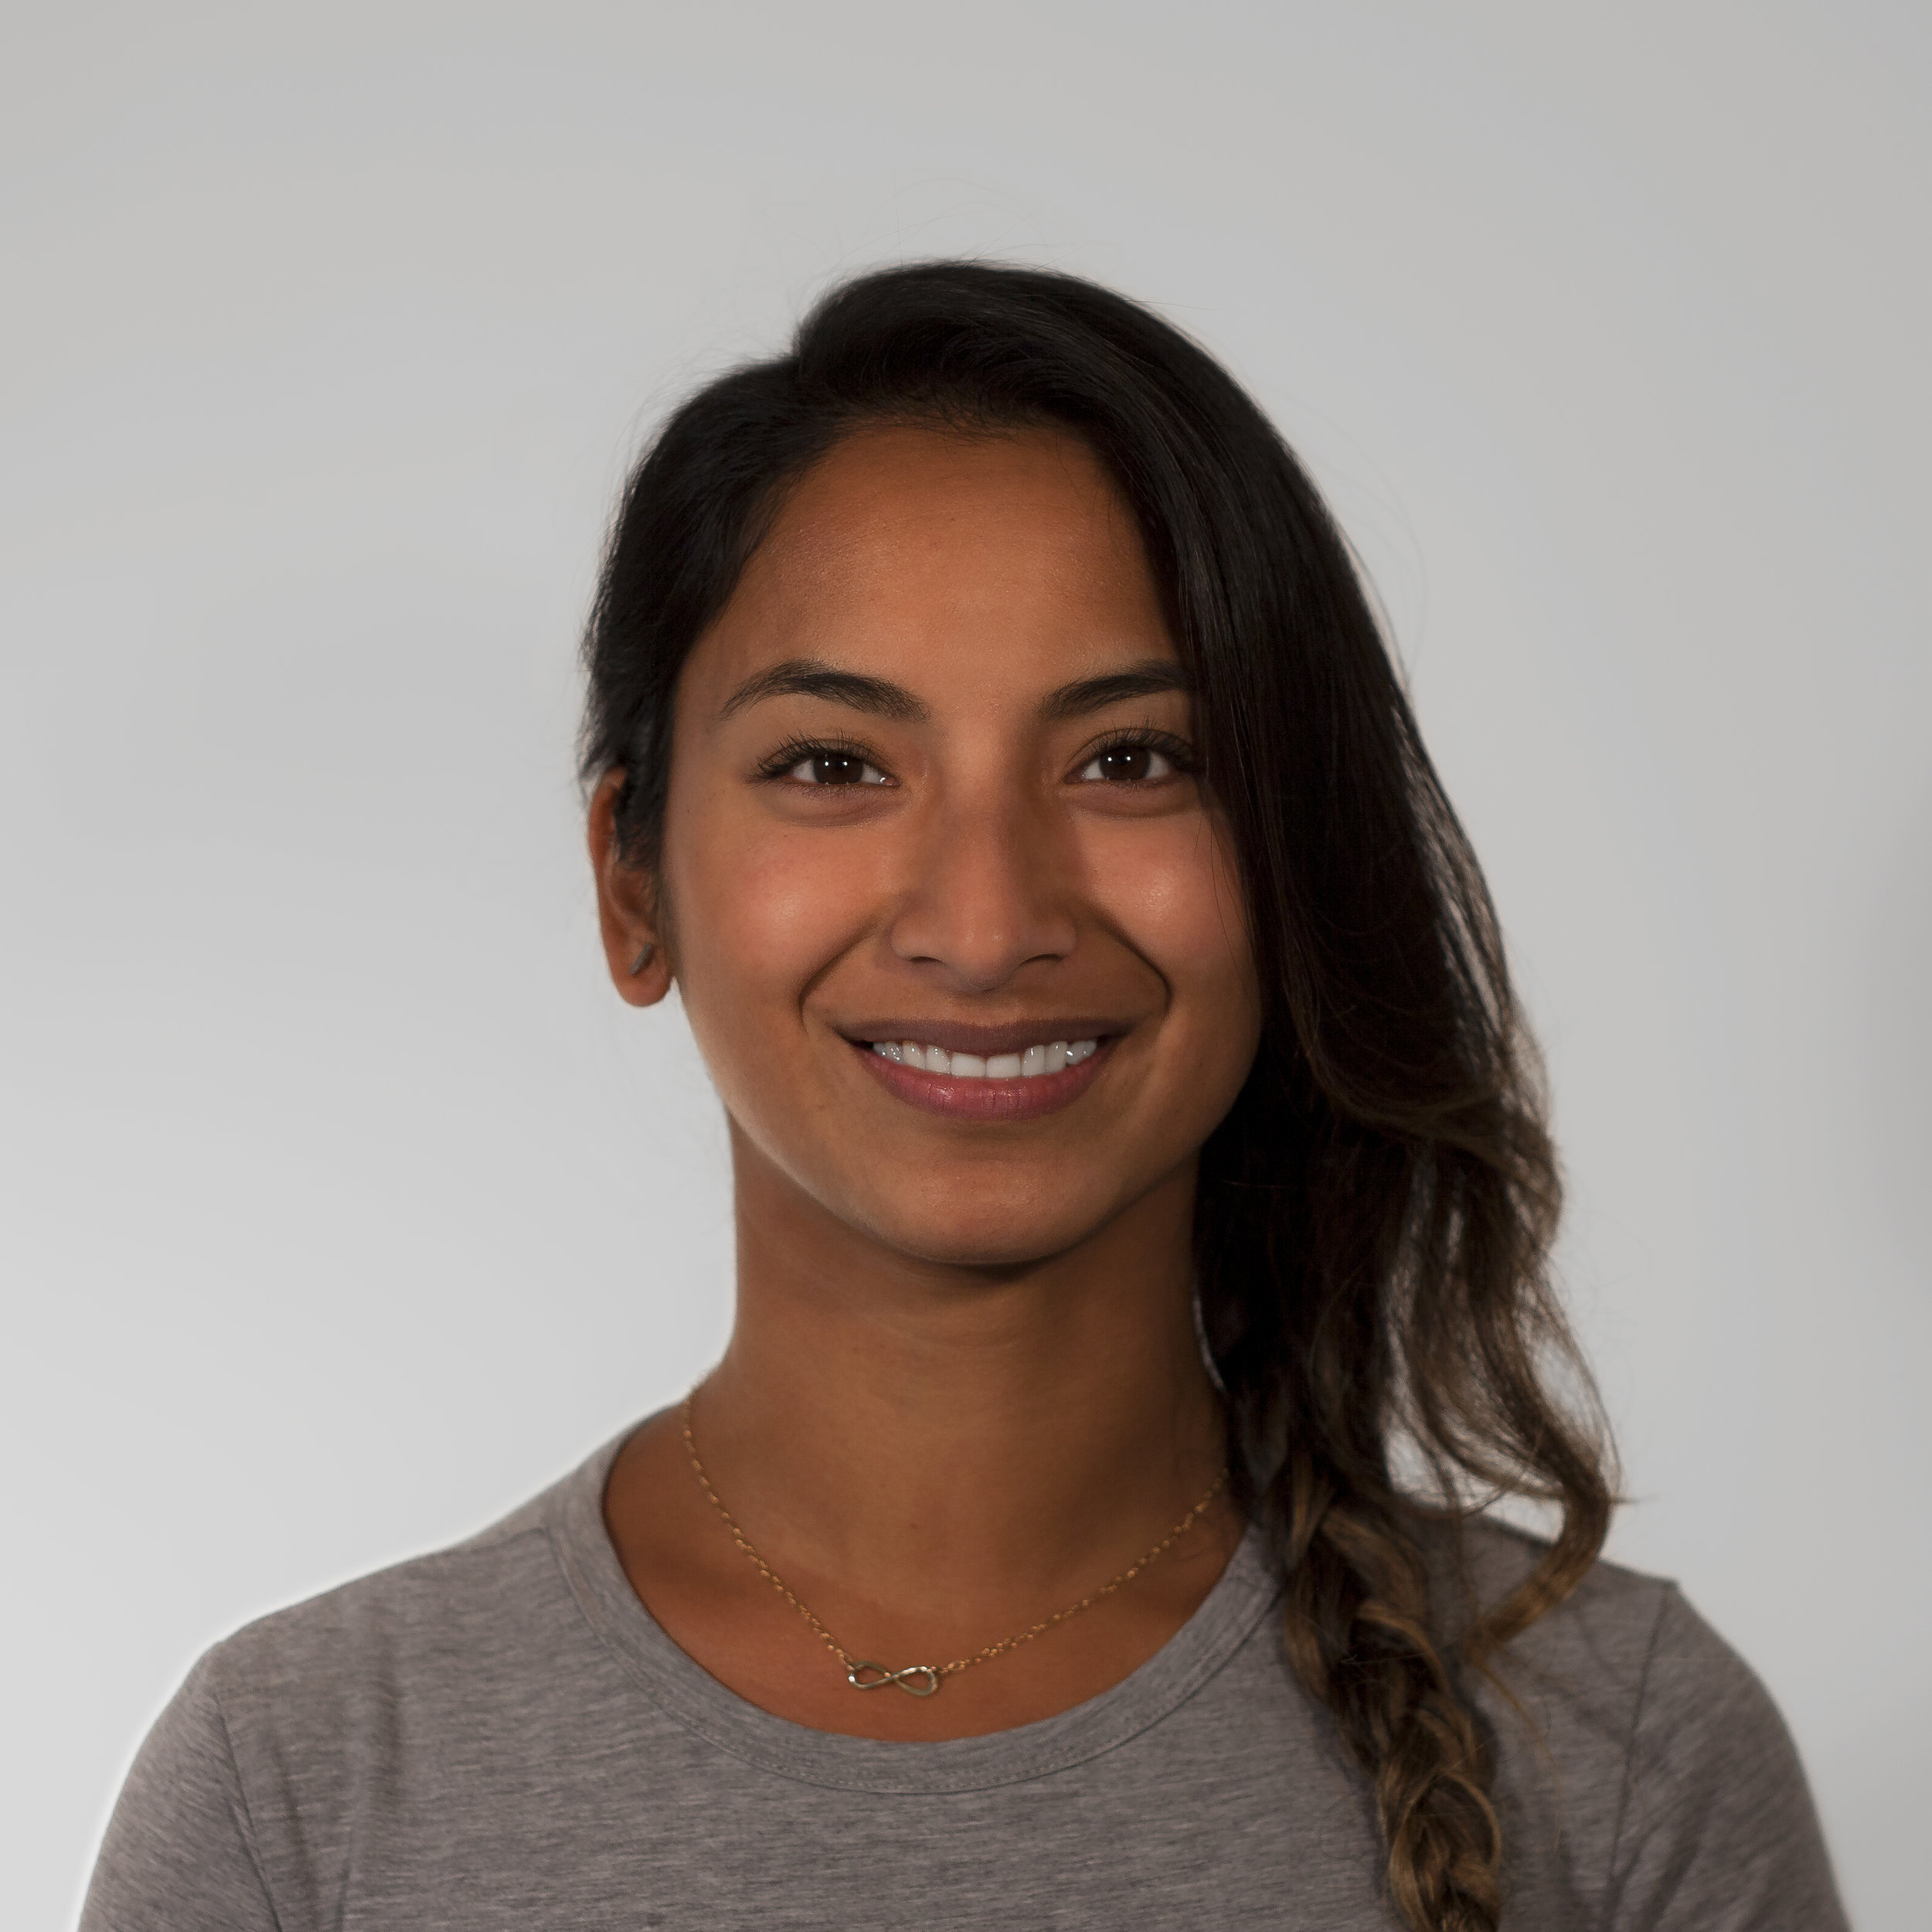 Sabrina Rambohul  BSc (Hons) Ost Med    Osteopath    Appointments with Sabrina  can be made on:    Monday: 8am - 12pm      Tuesday: 11am - 8pm      Wednesday: 3.45pm - 8pm      Thursday: 8.30am - 2pm      Friday: 3.30pm - 5pm      Saturday: 9am - 3pm    Sabrina qualified in 2009 and her treatment approach incorporates a variety of osteopathic methods adjusted to suit each patient - from  soft tissue techniques  to  joint manipulations .  She prefers to use  western acupuncture (dry needling)  to ease acute muscle spasms and muscle tension. She may also use supportive  taping  or  Kinesio-taping  to help with certain injuries.  During each treatment,  ergonomic, postural, and exercise advice  is usually given for the aftercare of treatment. Her special interests include treatment of  back pain, pregnancy related issues, headaches and nerve impingements  such as  sciatica.   Sabrina has had her fair share of injuries and understands the frustrations as well as the importance of correct rehabilitation back into a sport. She keeps herself active by playing for the best local team - Teddington Ladies Rugby Club. She has been successfully treating patients in Kingston, Teddington, Ham and Hampton Court for 10 years.     To find out what else Osteopaths treat    click here